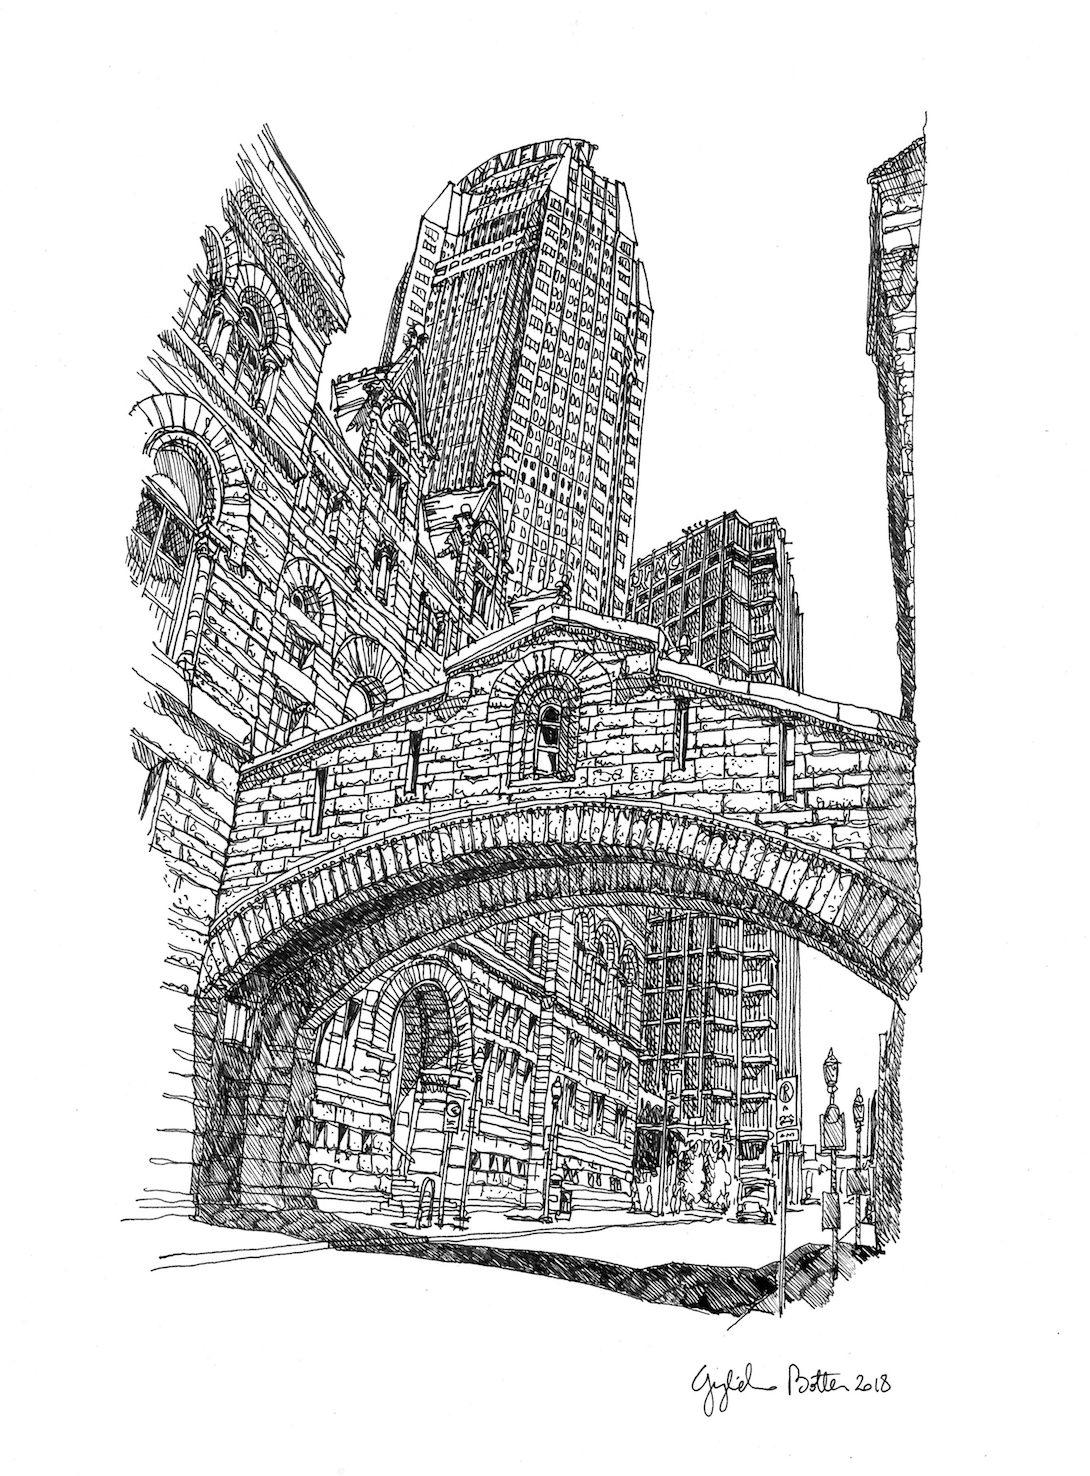 Pittsburgh, PA Allegheny County Courthouse and Old Jail, 2018, Pen & Ink, 17 x 14 inches